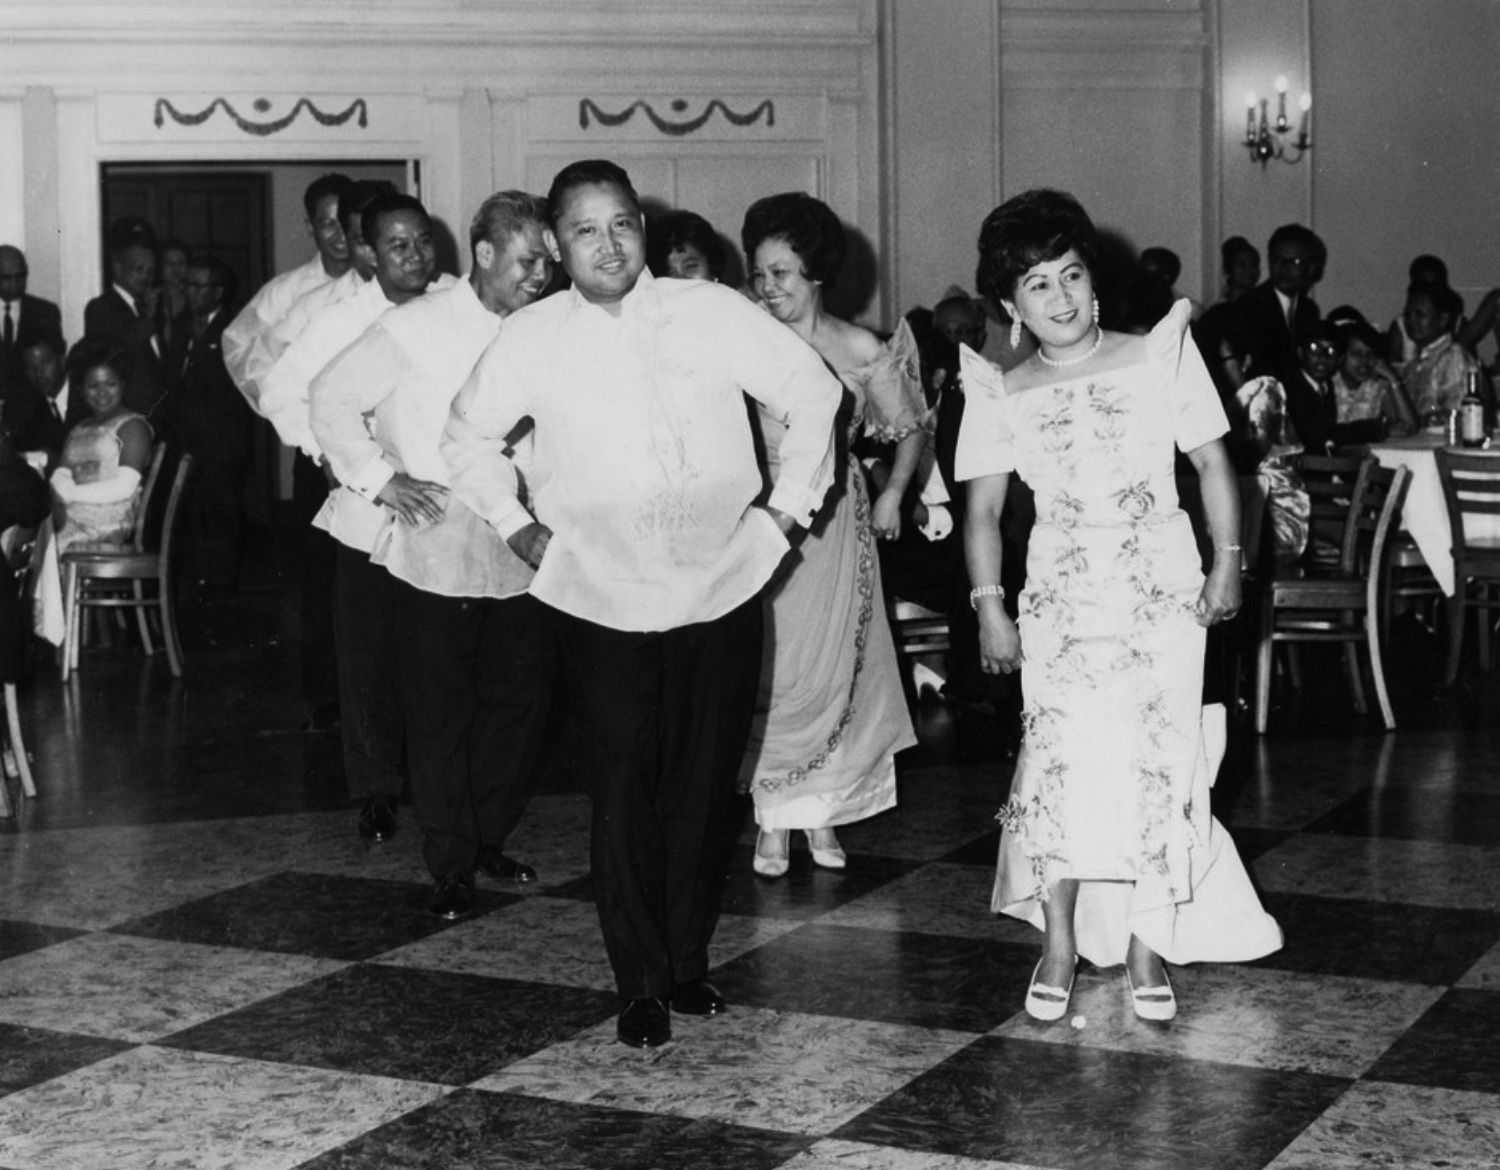 Couples dancing in traditional Filipino dress in Washington, D.C.